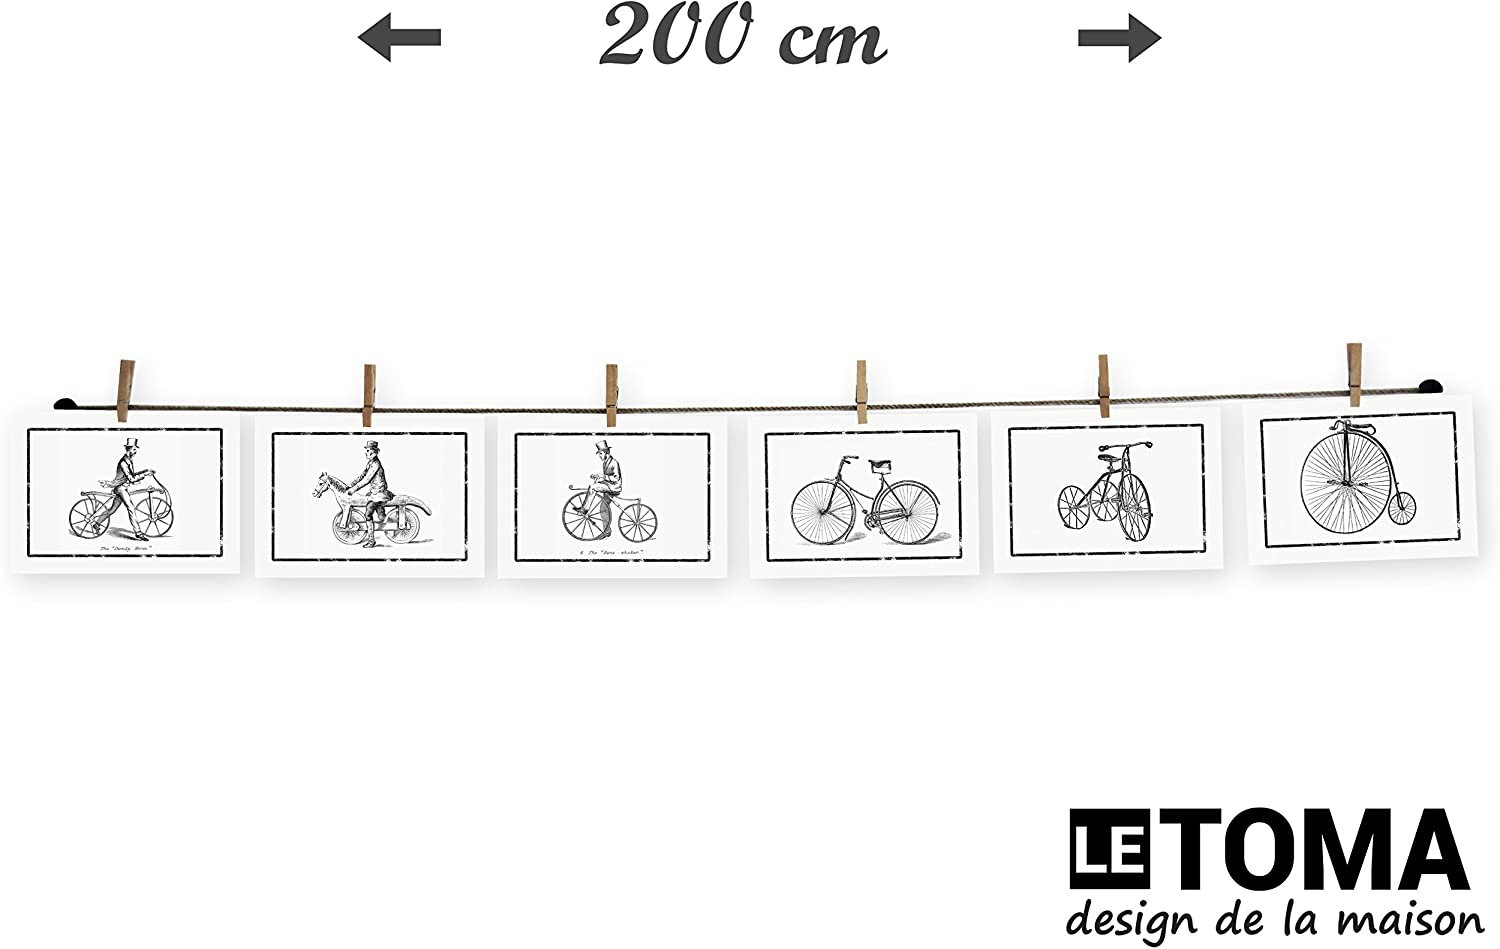 80 cm LeTOMA 30 natural hemp rope with 7 clips High-grade twine with wooden craft pegs for simple and fast fixation Photo string and pegs for a charming wall decoration